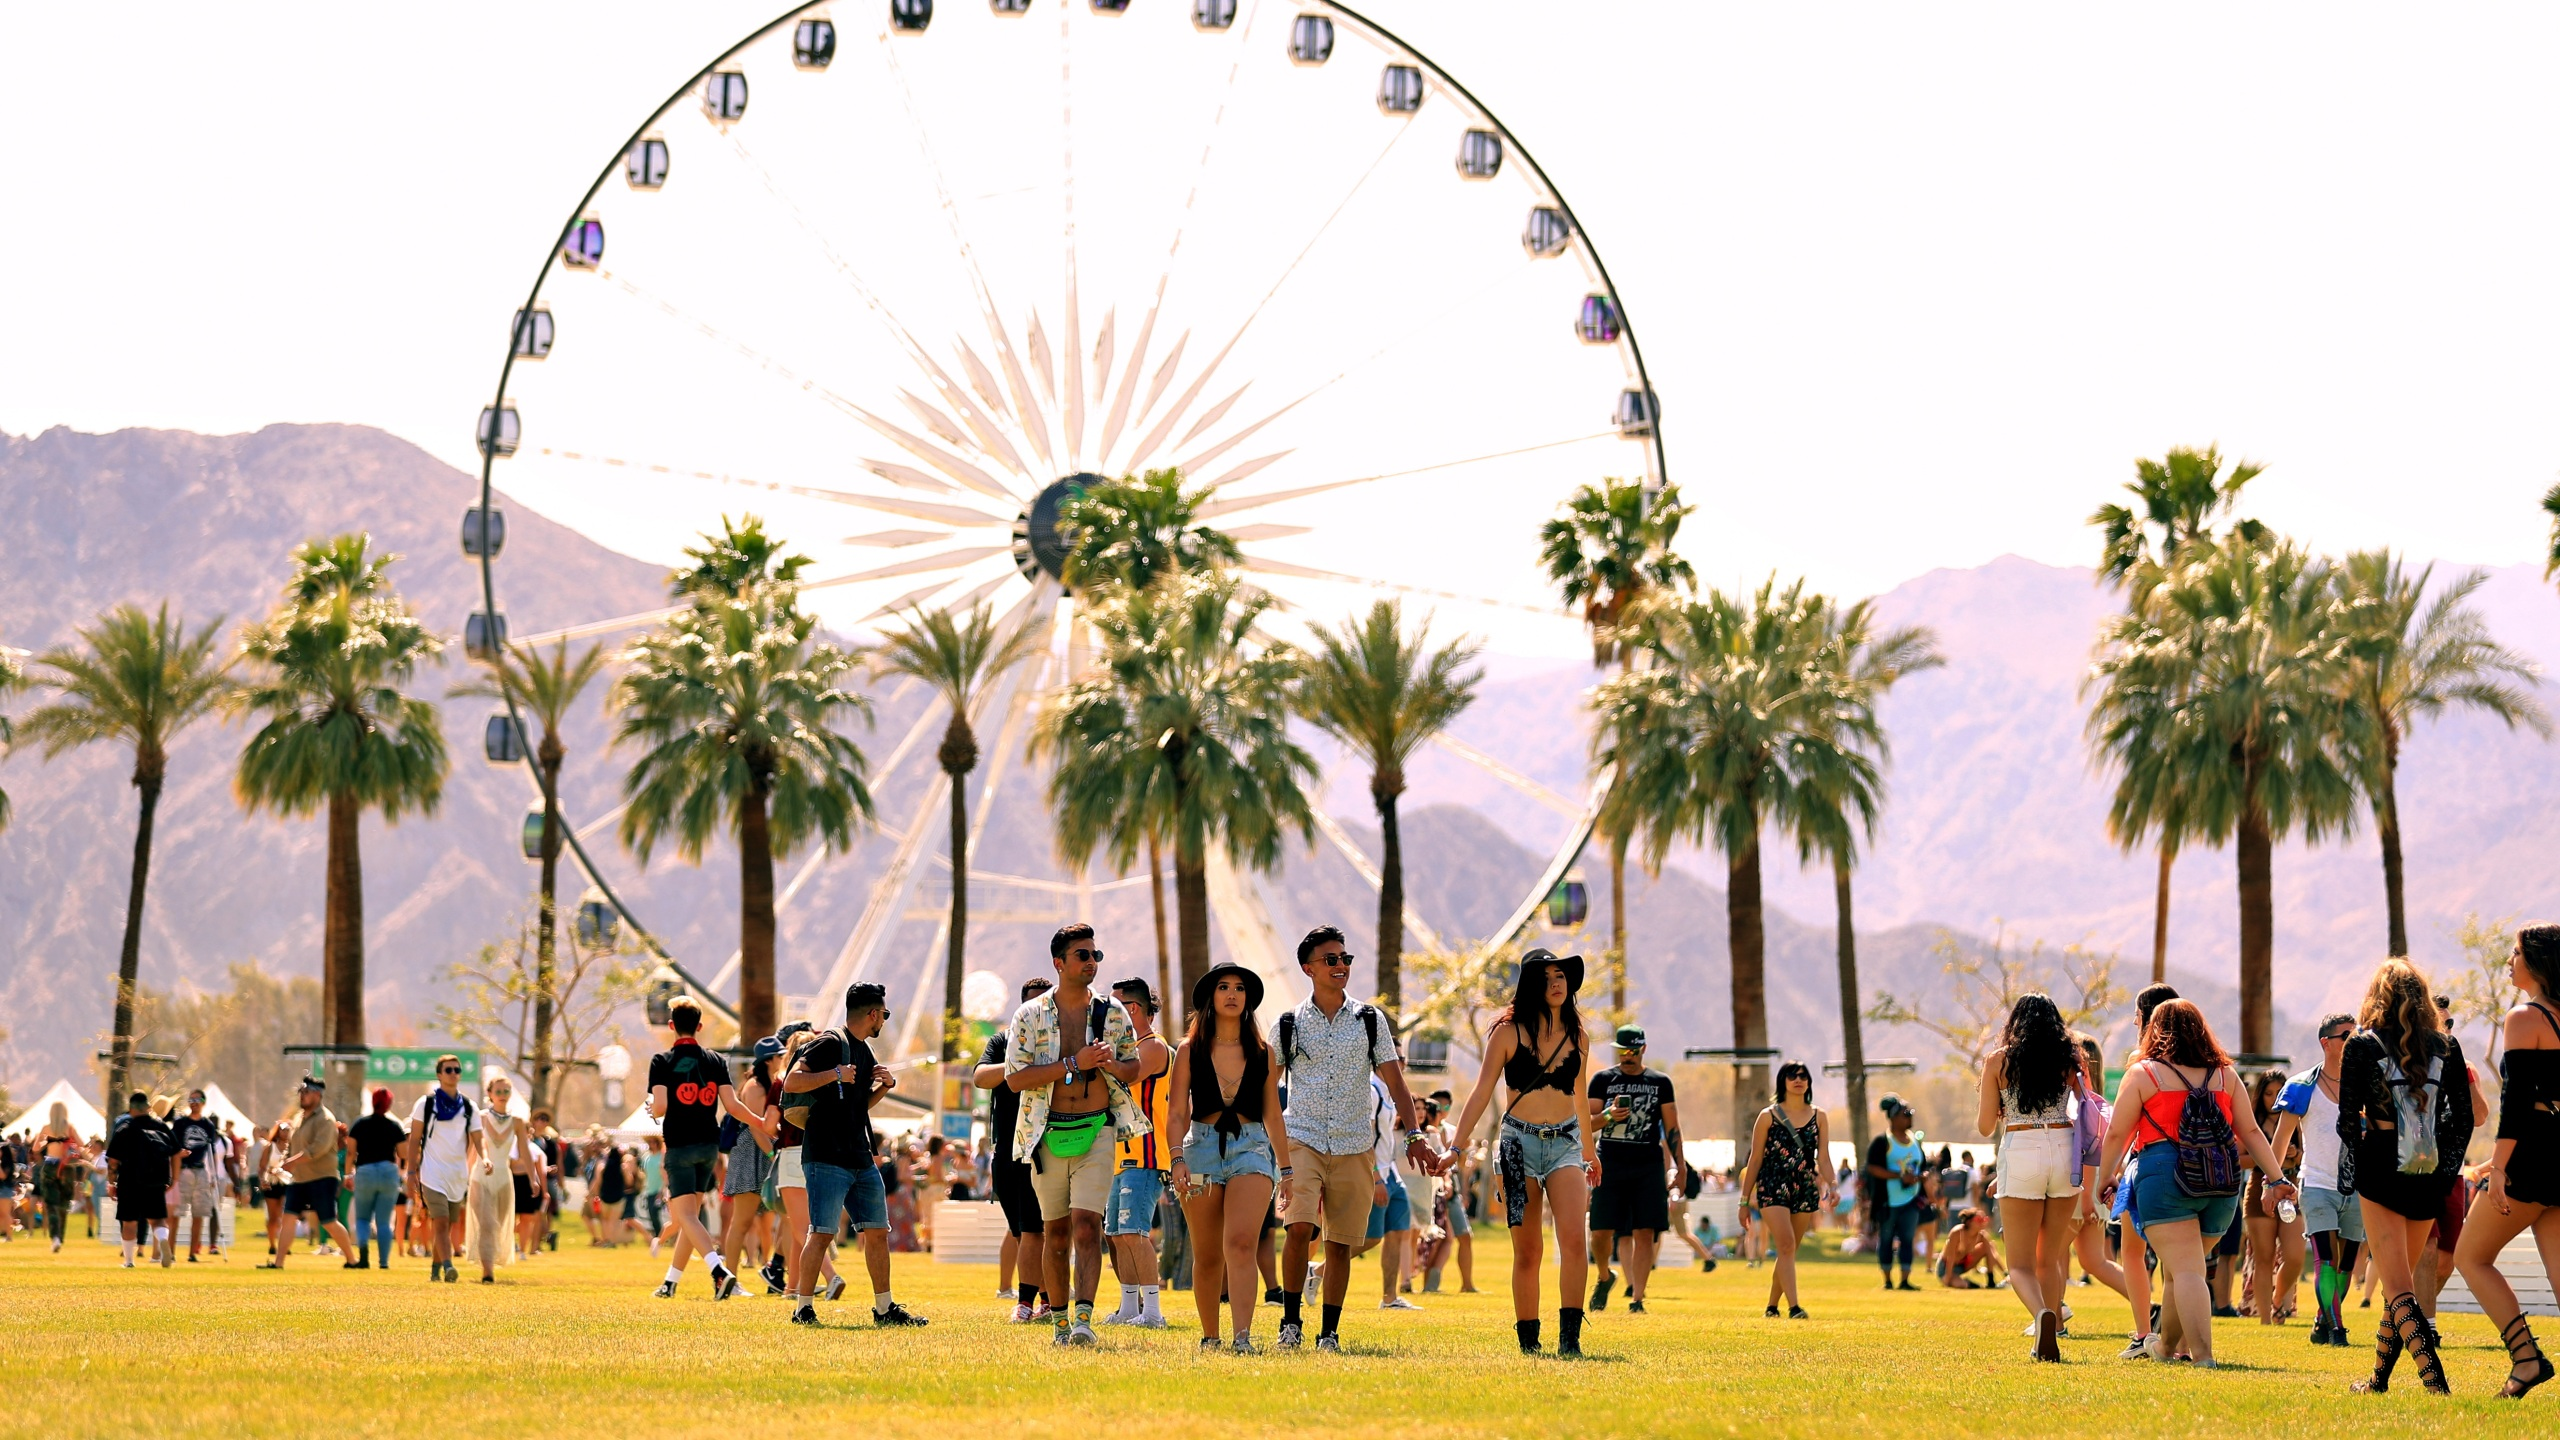 Festivalgoers attend the 2018 Coachella Valley Music And Arts Festival at the Empire Polo Field on April 13, 2018, in Indio, California. (Christopher Polk/Getty Images for Coachella)